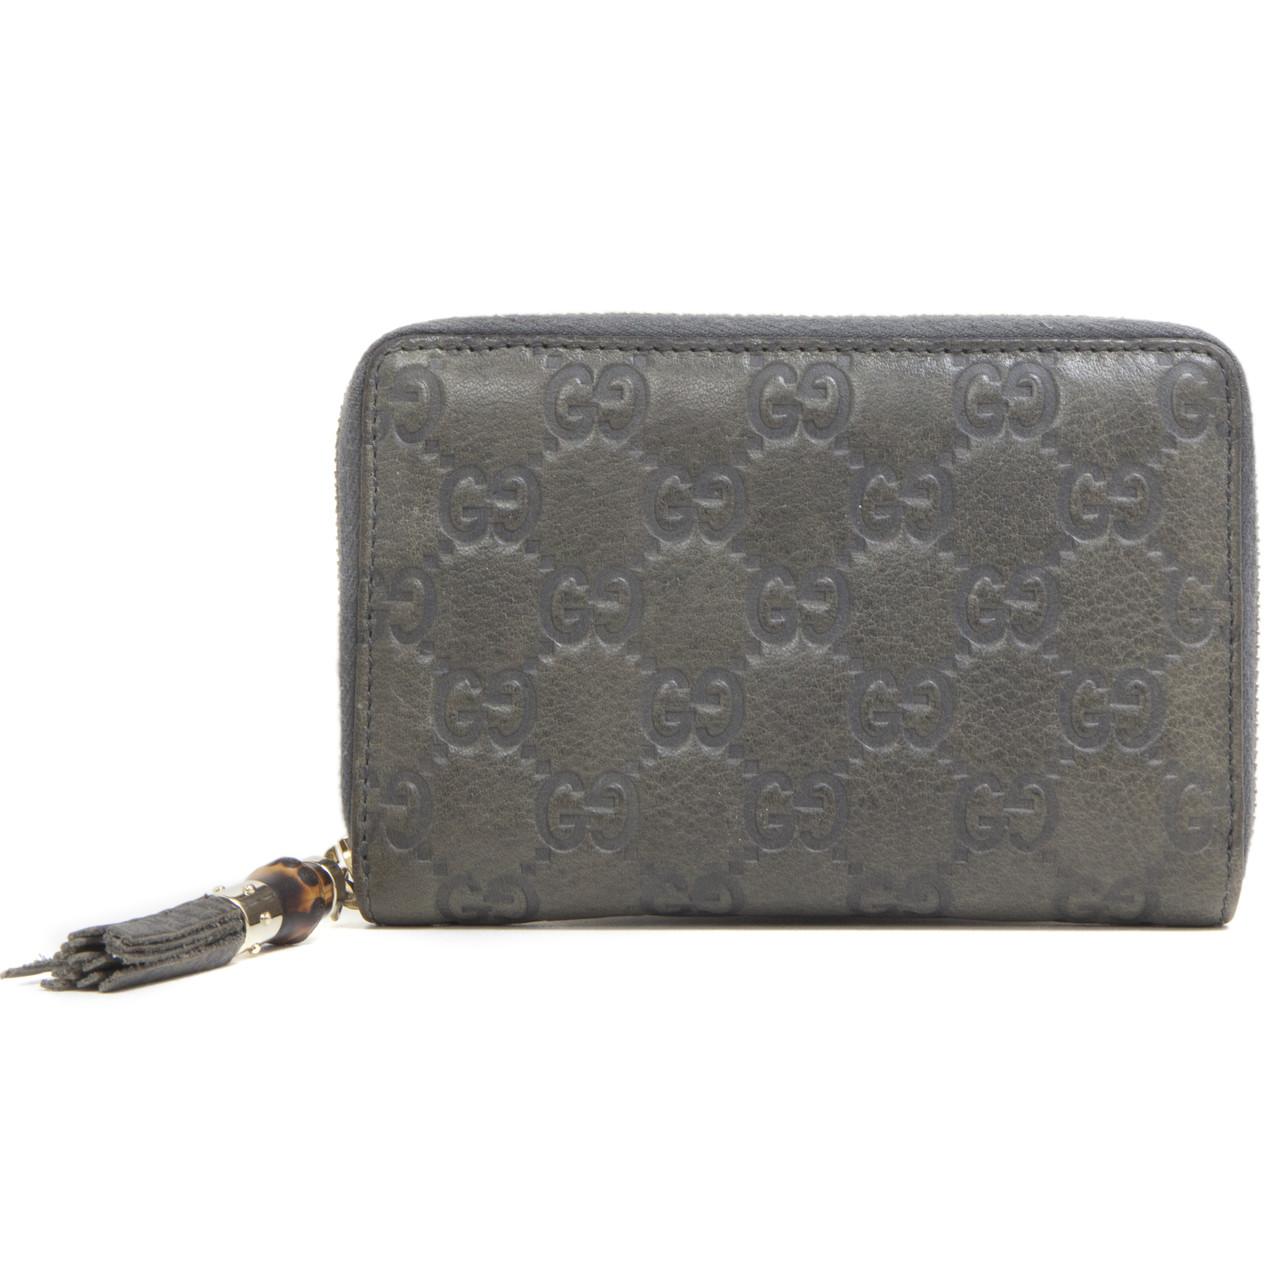 d15b83af3e57 Gucci Grey Guccissima Bamboo Zip Wallet - modaselle